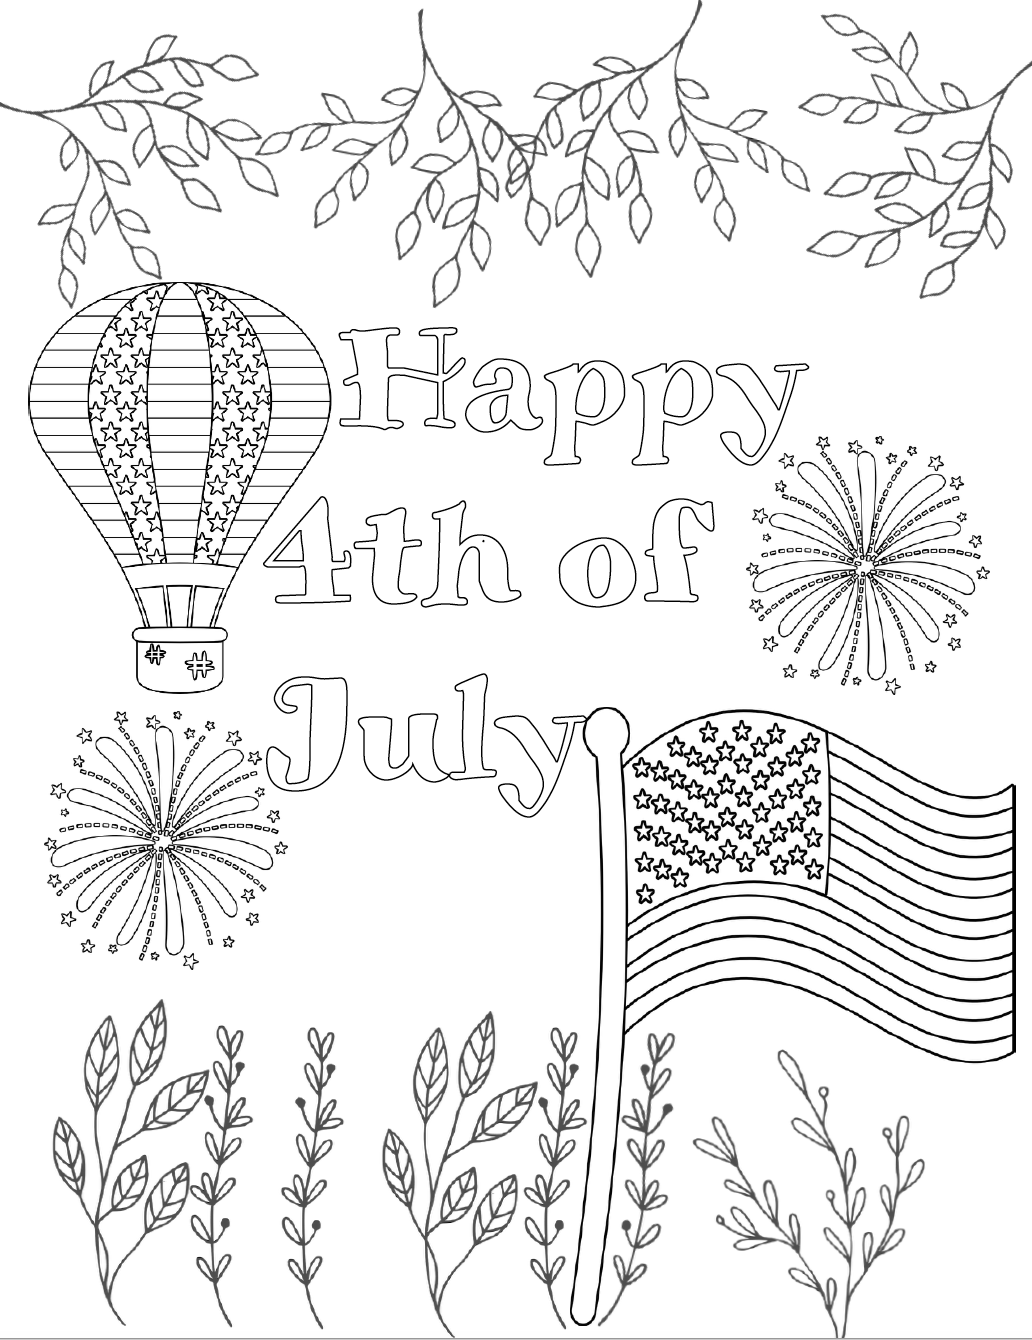 july 4 coloring pages july 4th coloring pages christianbookcom blog pages coloring 4 july